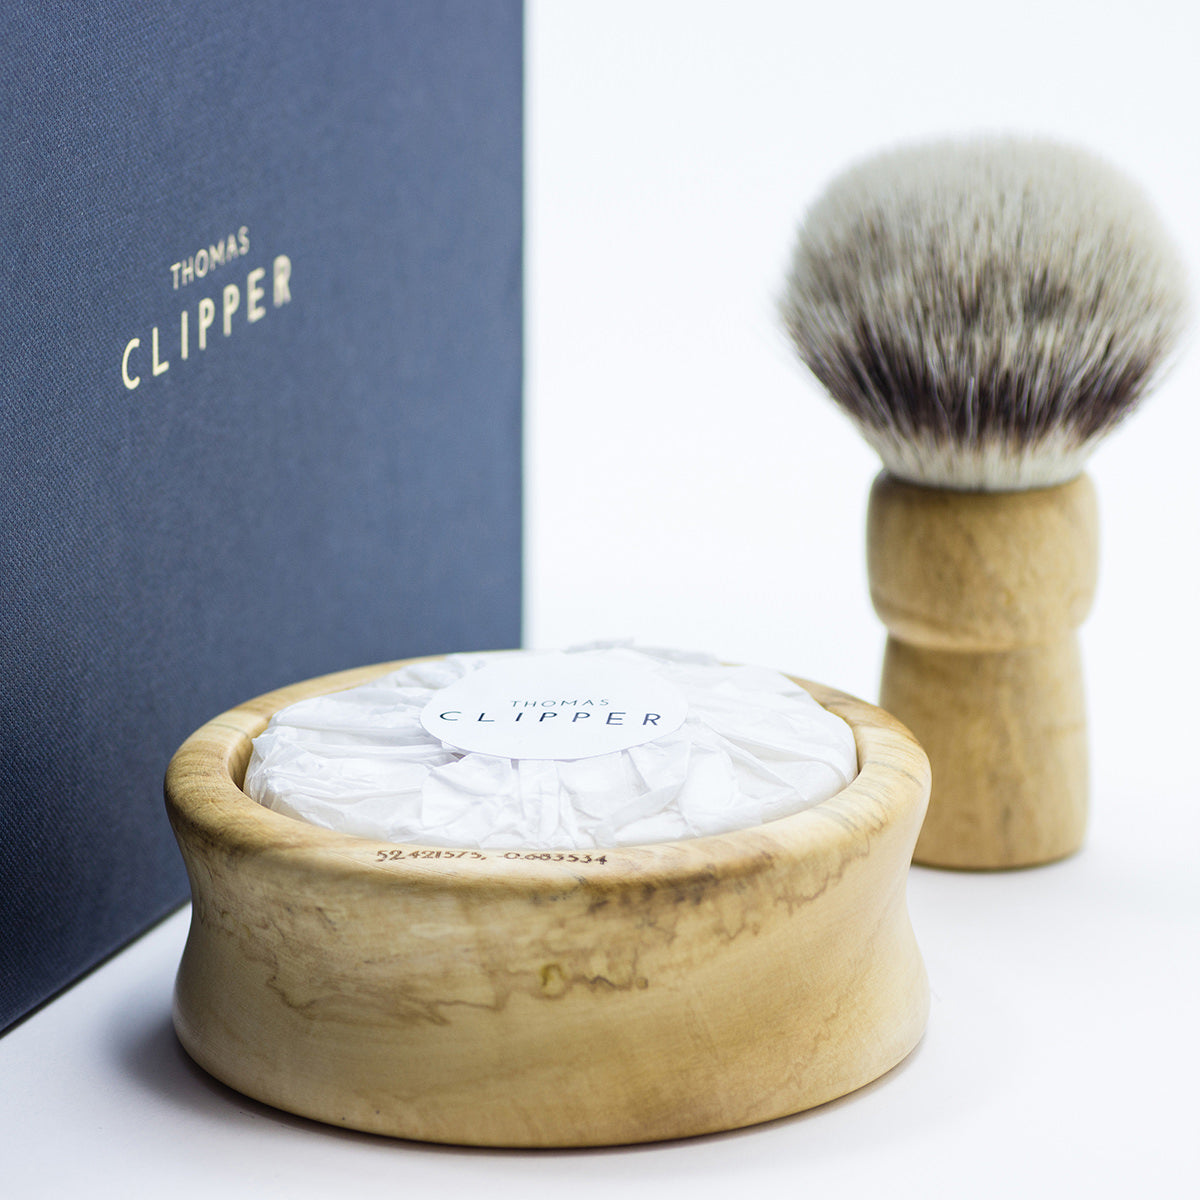 300-year-old British chestnut, sustainably sourced from the Boughton estate near Kettering. Premium badger-friendly synthetic bristles.